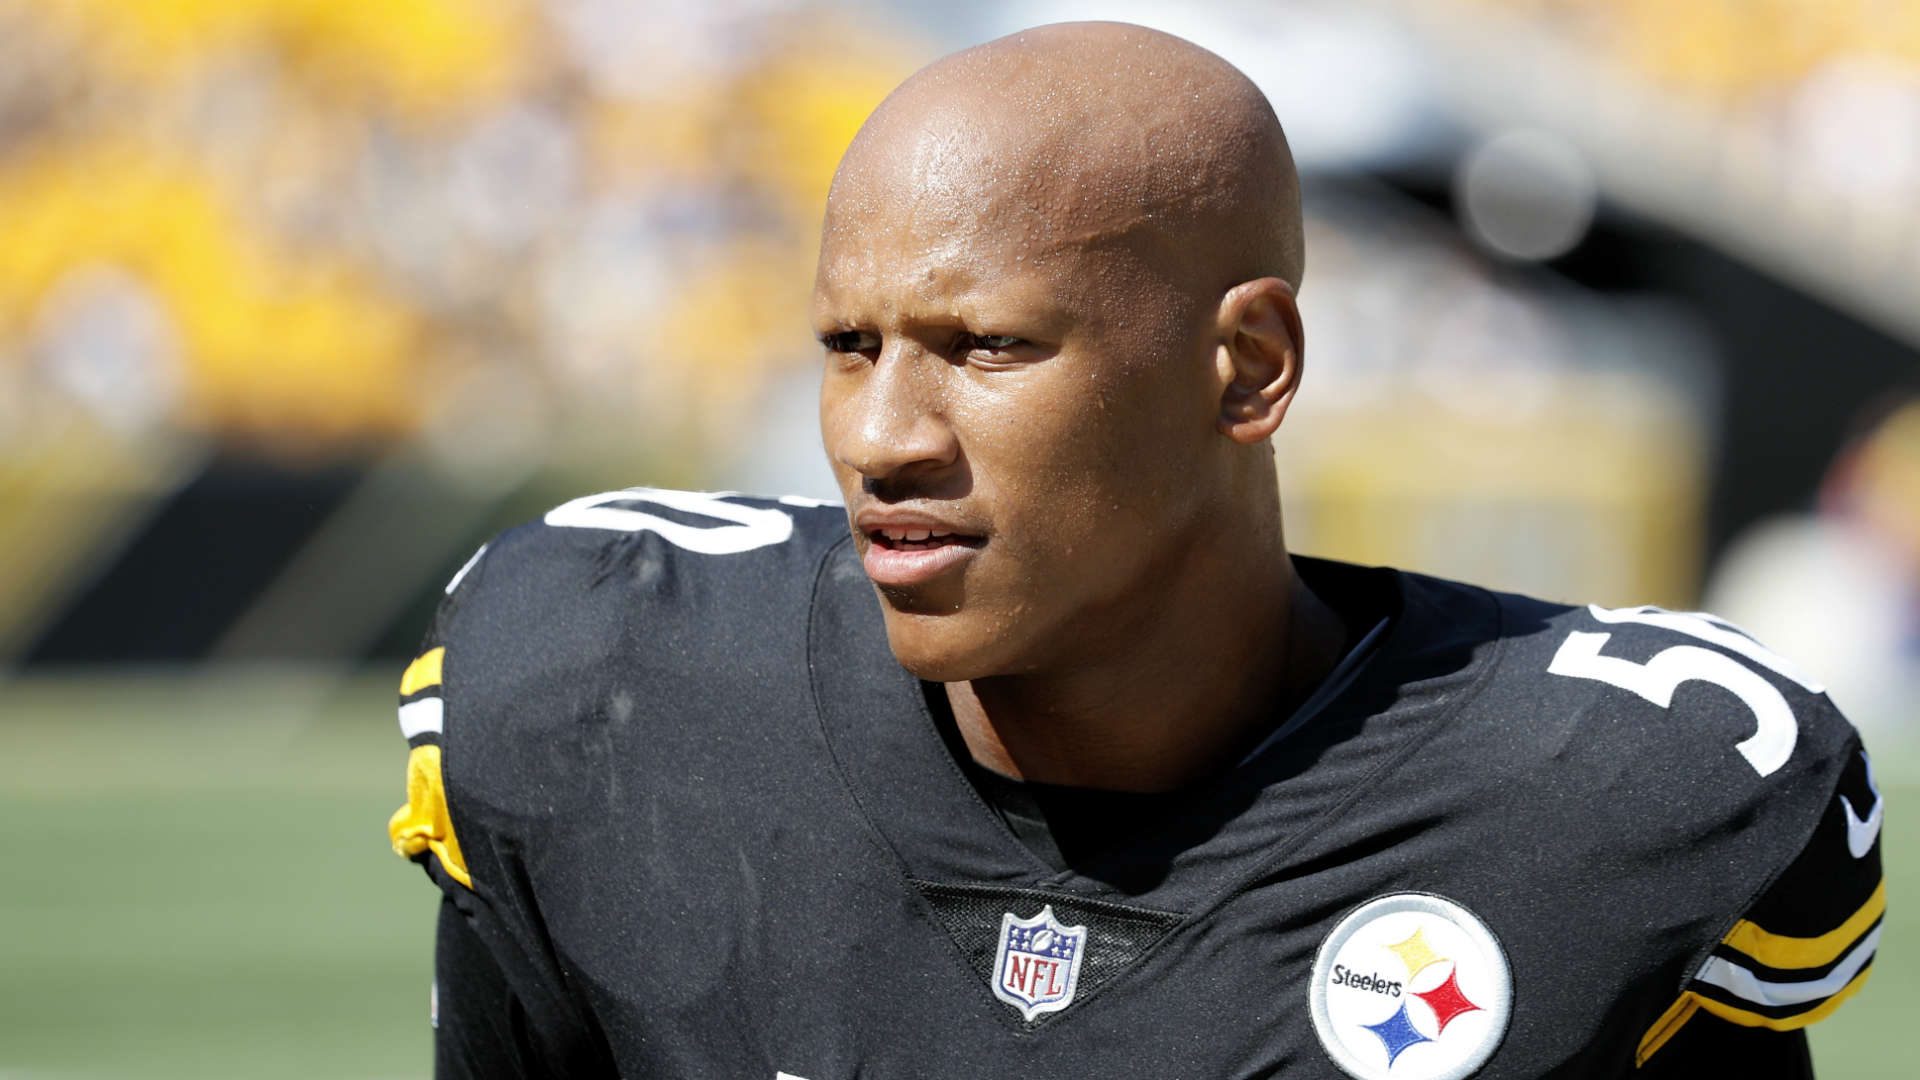 Ryan Shazier reflects on anniversary of his injury: 'My life changed forever'